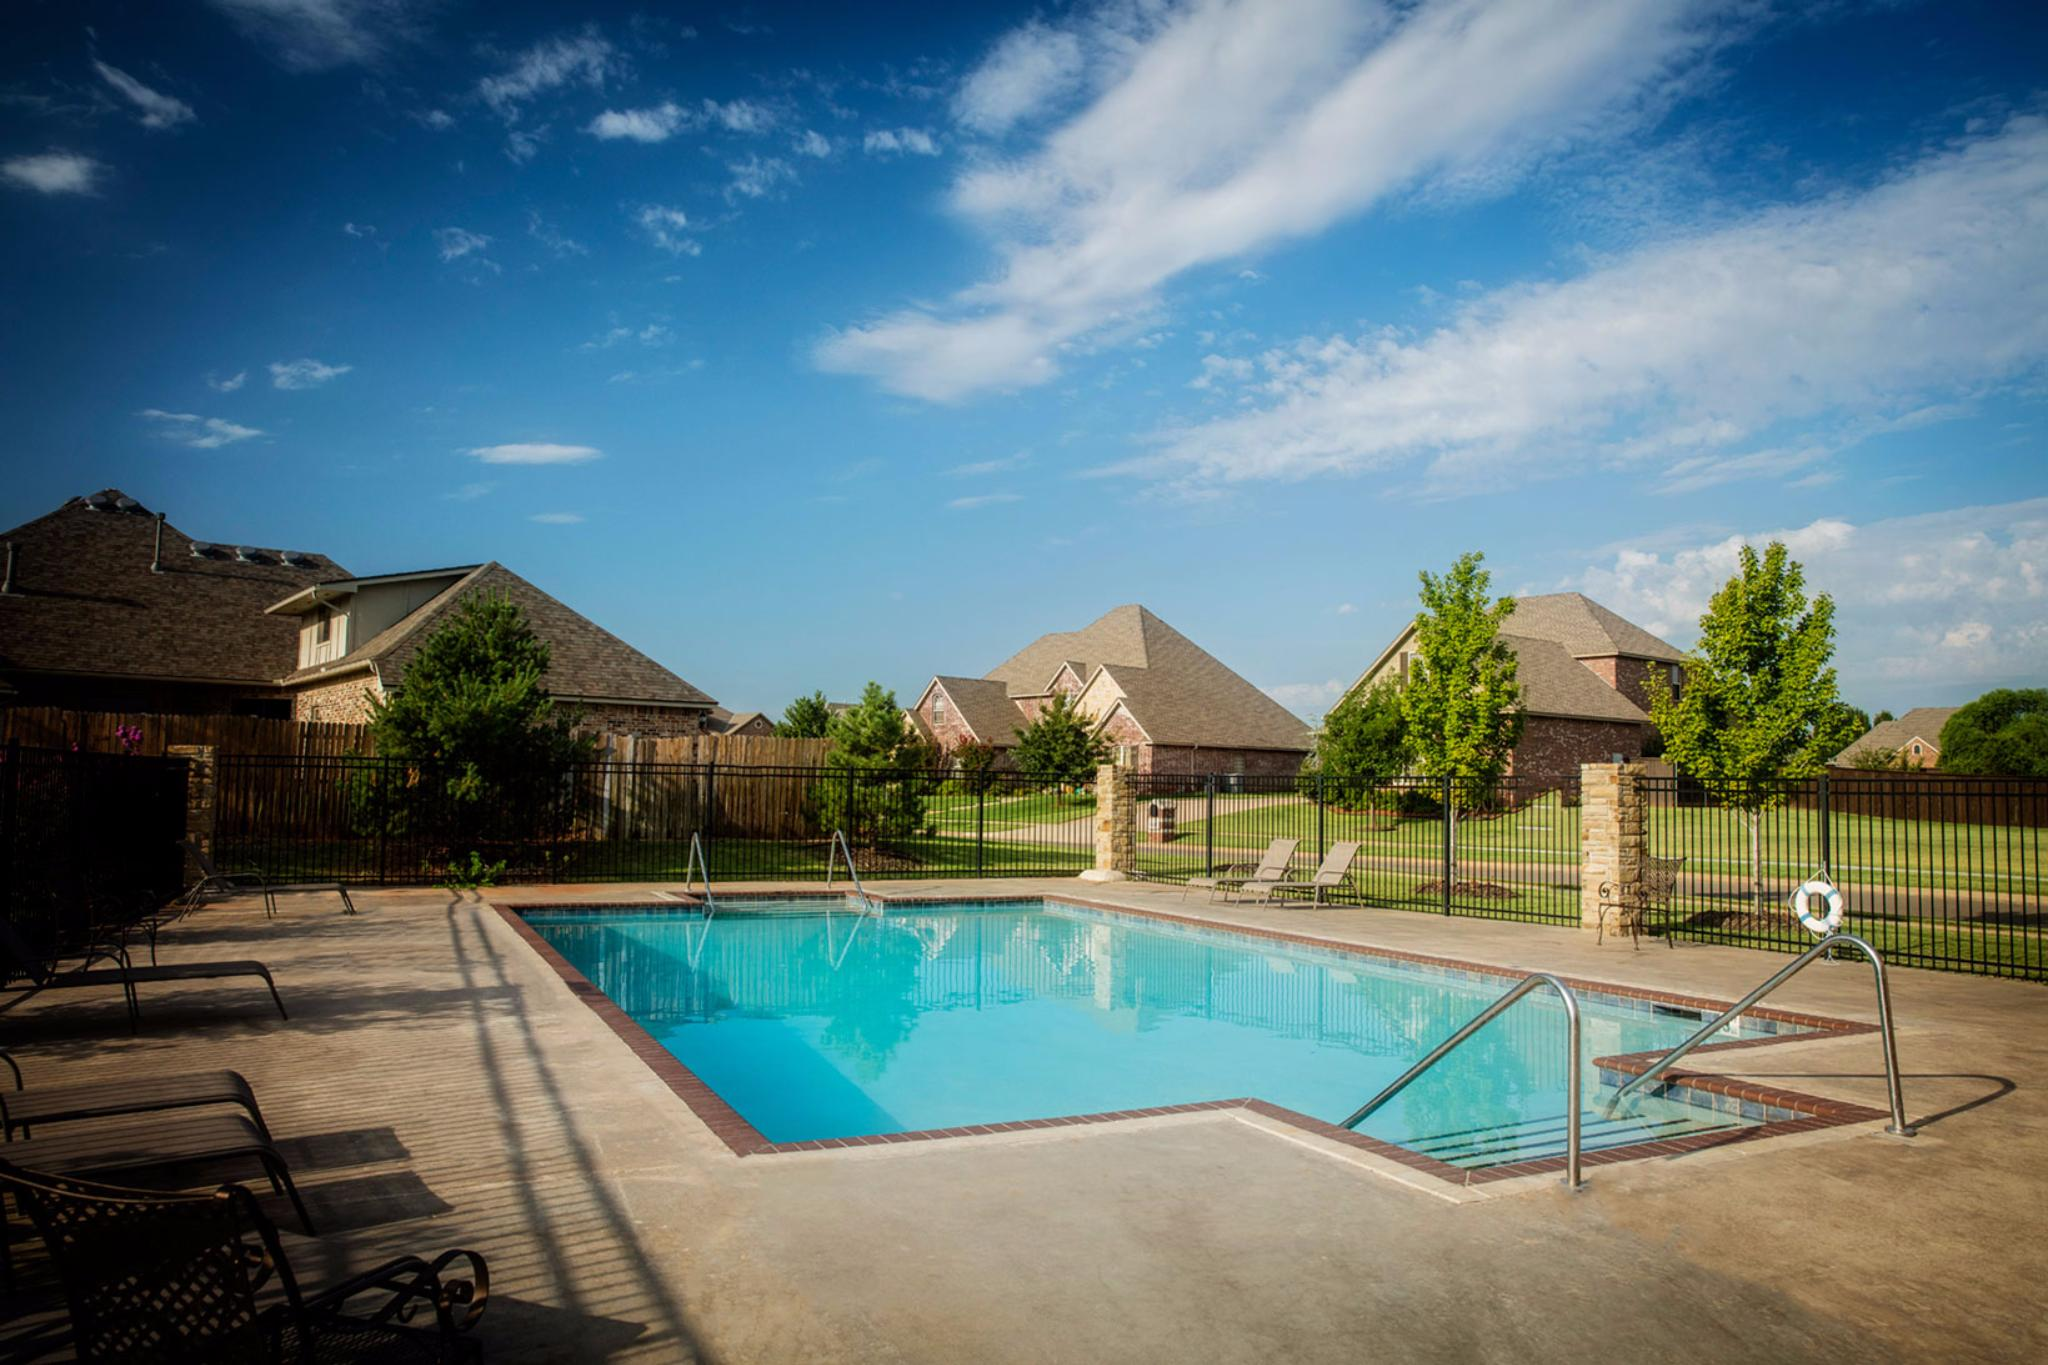 Marvelous New Homes For Sale In Edmond Deer Creek Ok Ideal Homes Home Interior And Landscaping Ologienasavecom